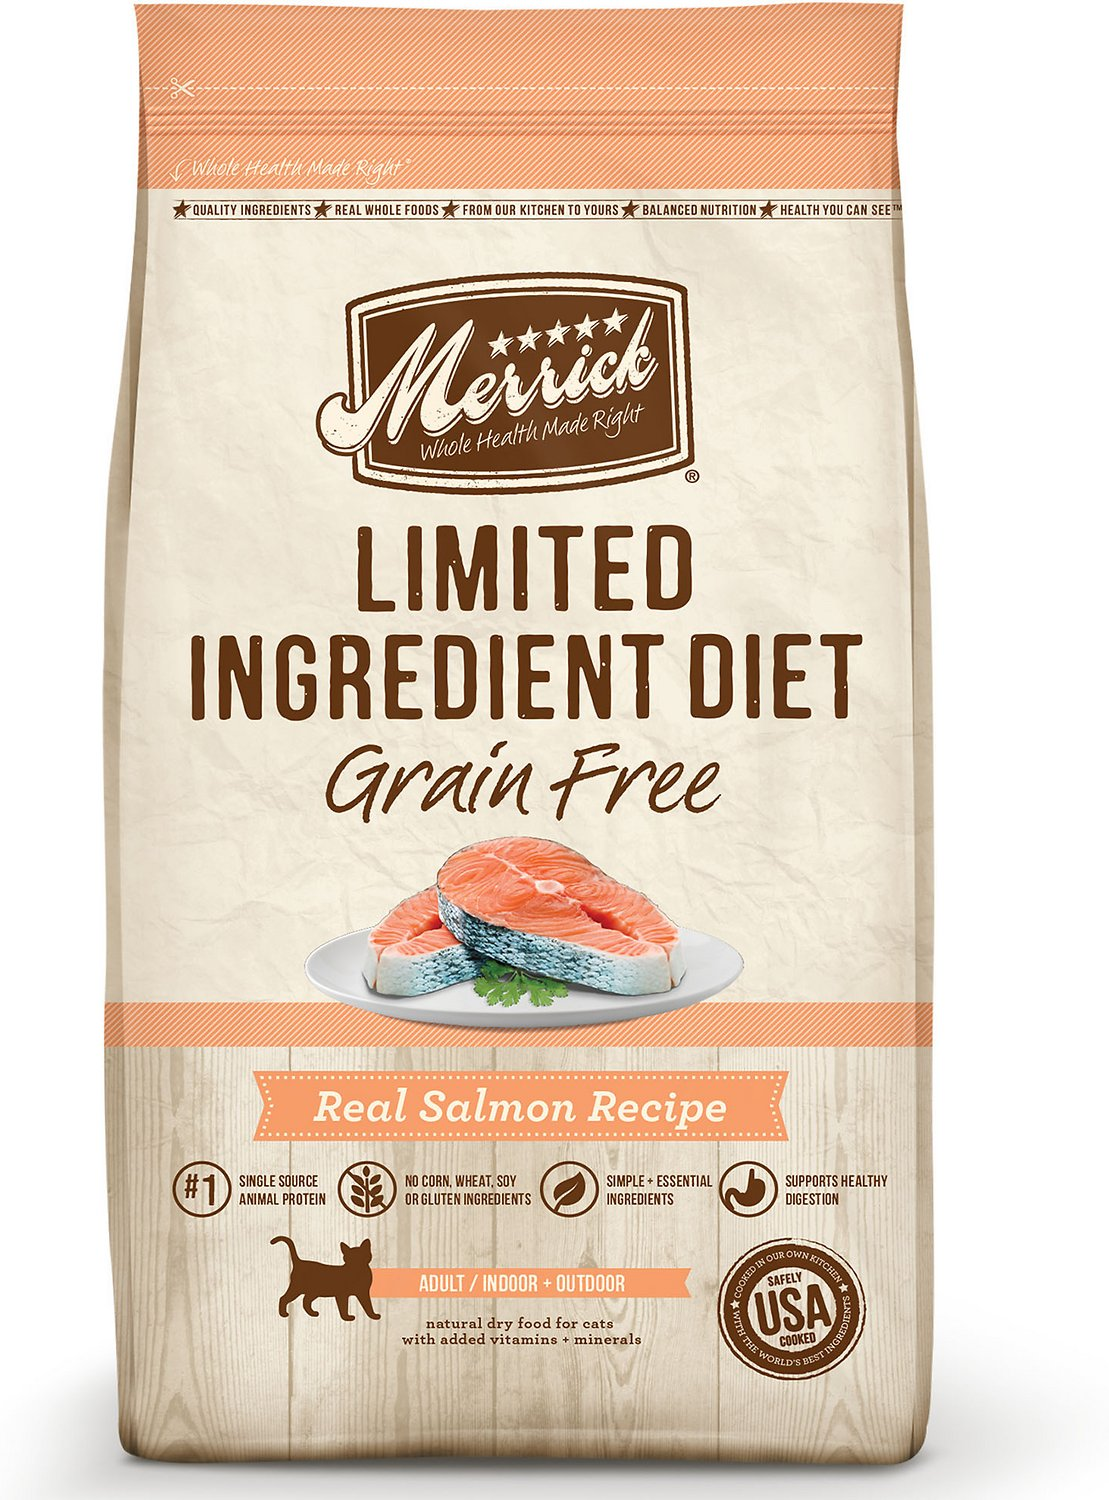 Merrick Limited Ingredient Diet Grain-Free Real Salmon Recipe Dry Cat Food Image